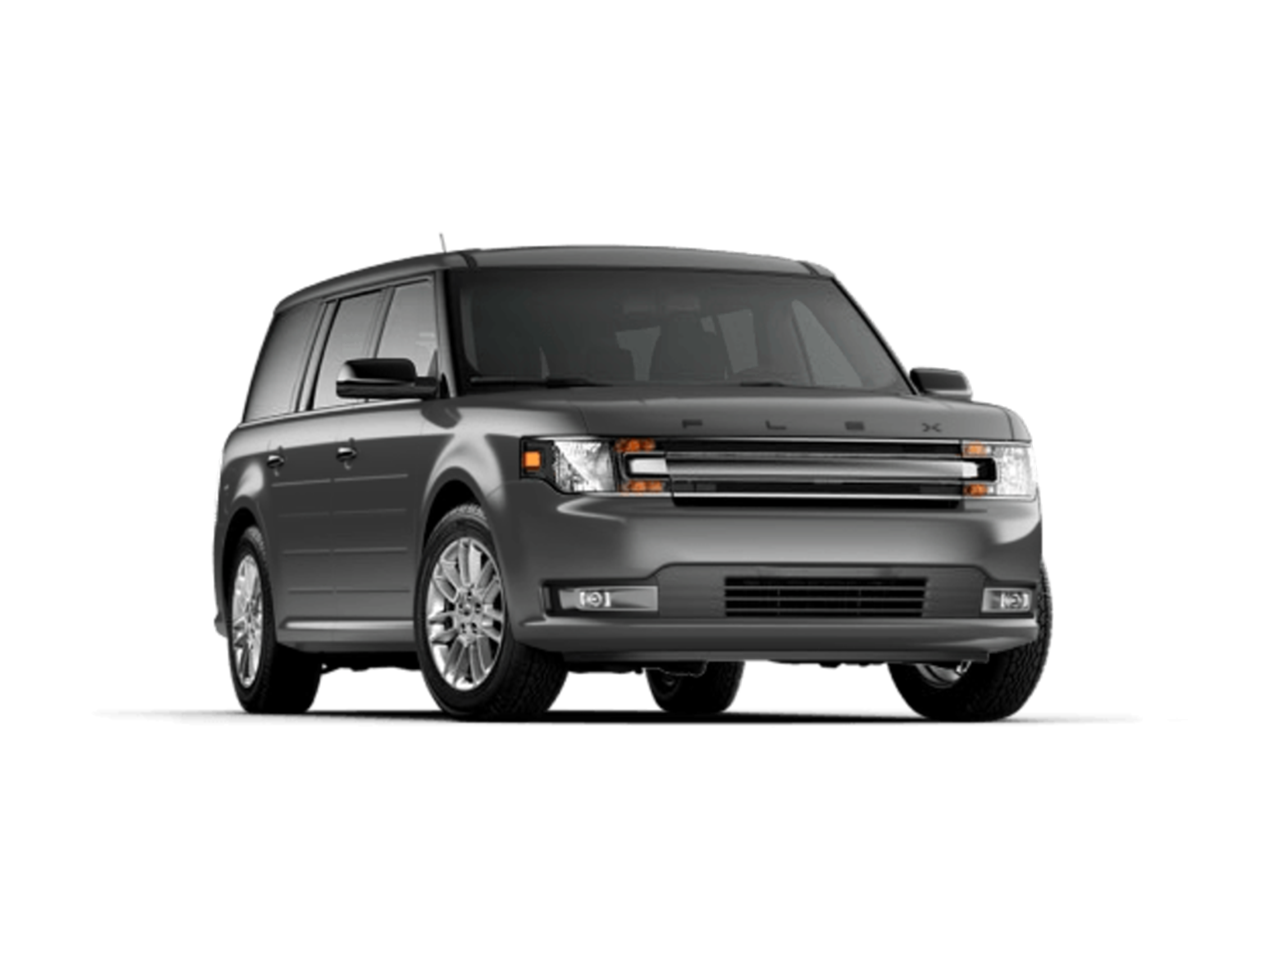 Test Drive A 2015 Ford Flex at Doenges Ford in Tulsa